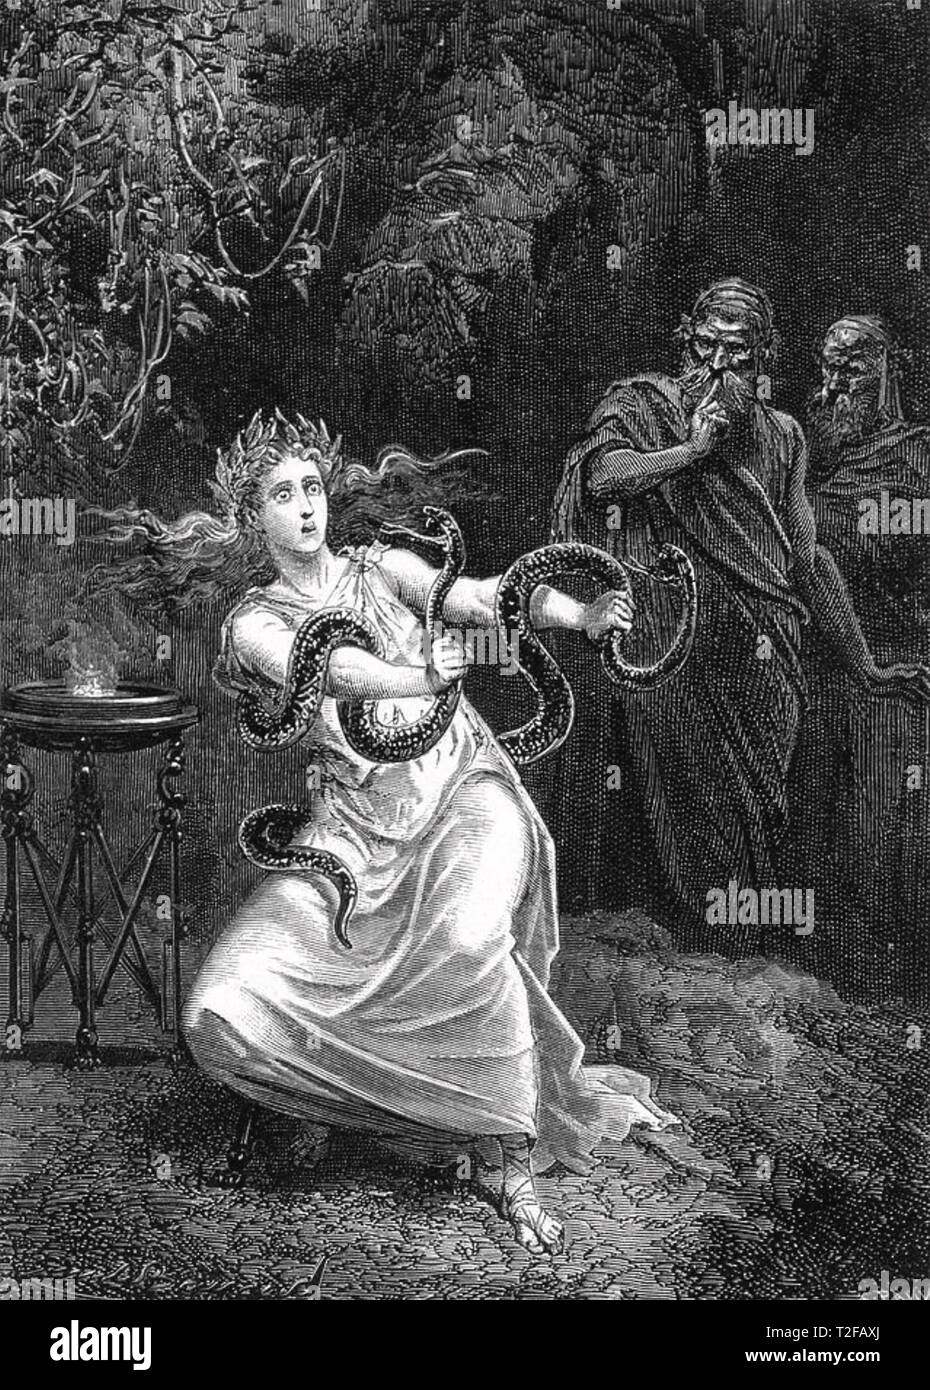 ORACLE OF DELPHI The Pythia (High Priestess) wrestles with snakes in an early 19th century engraving - Stock Image